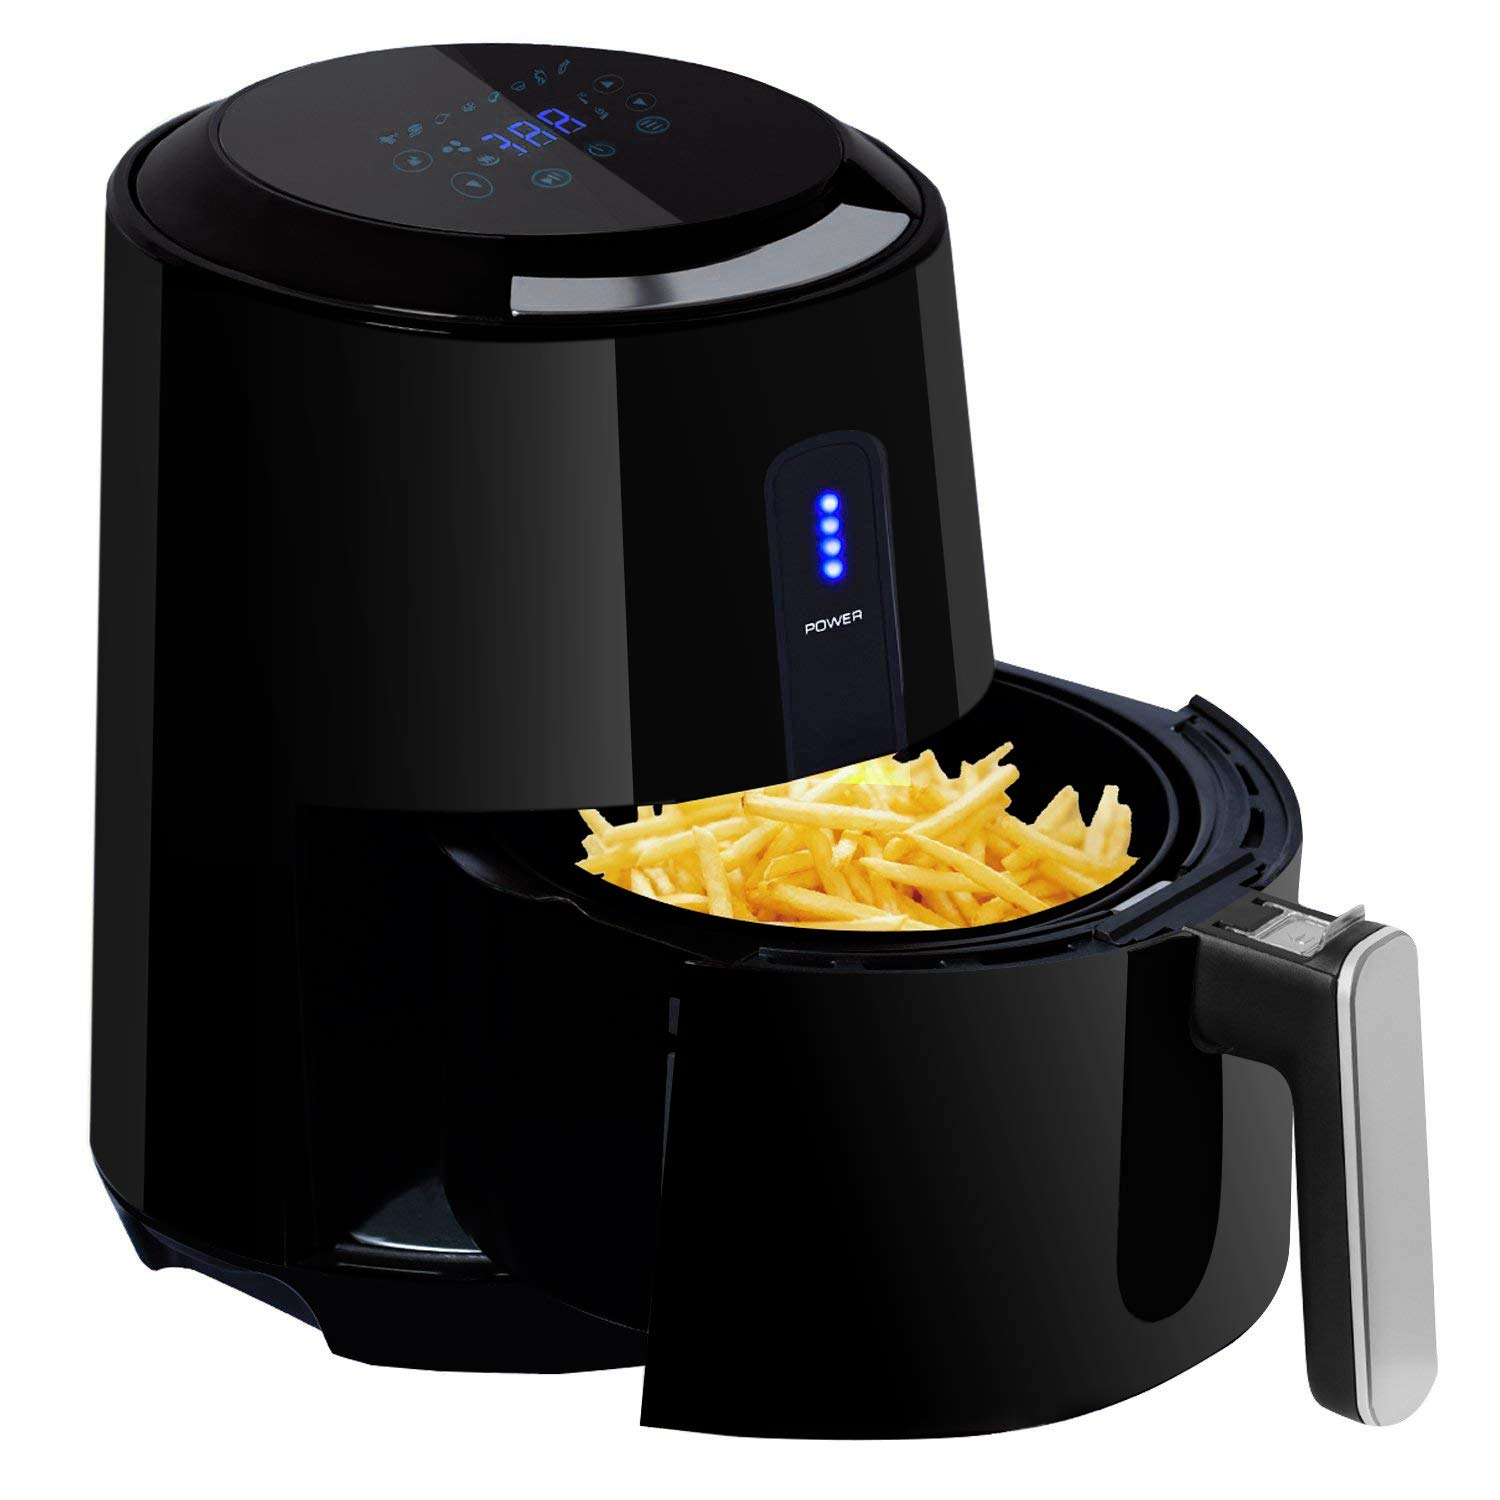 Air Fryer, POSAME 3QT Programmable 8-in-1 Digital Air Fryer, 1400W Electric Air Fryer with Detachable Basket, LCD Touch Screen